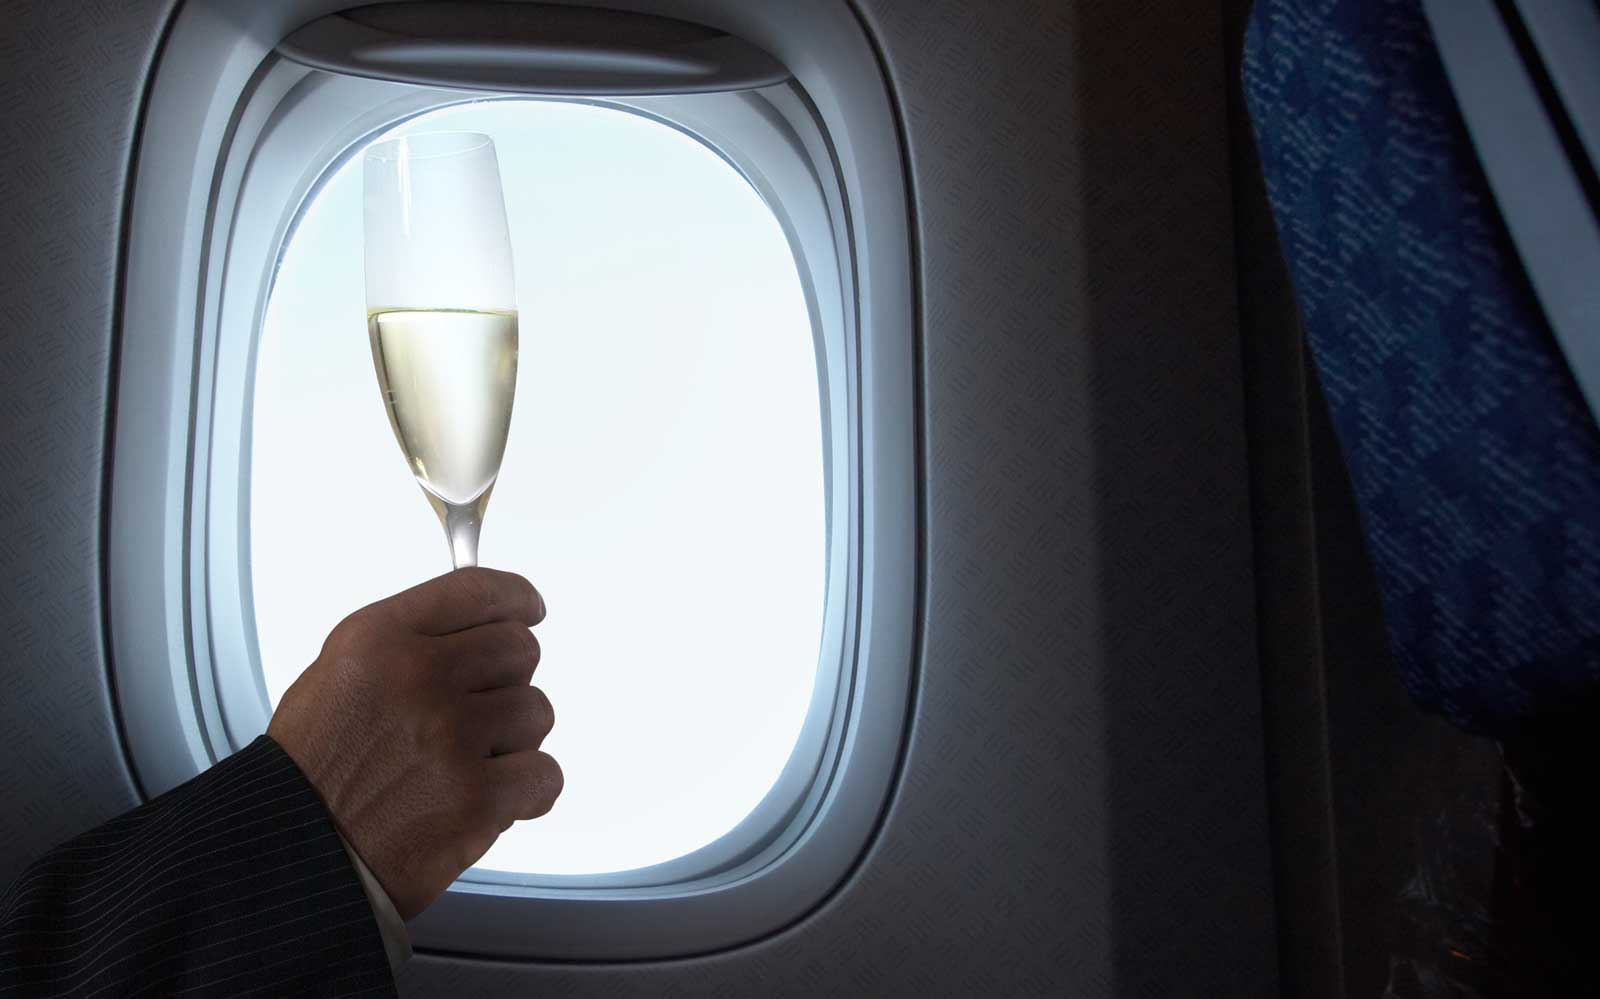 First Class Passenger Kicked Off Flight for Sneaking Drinks Back to Economy